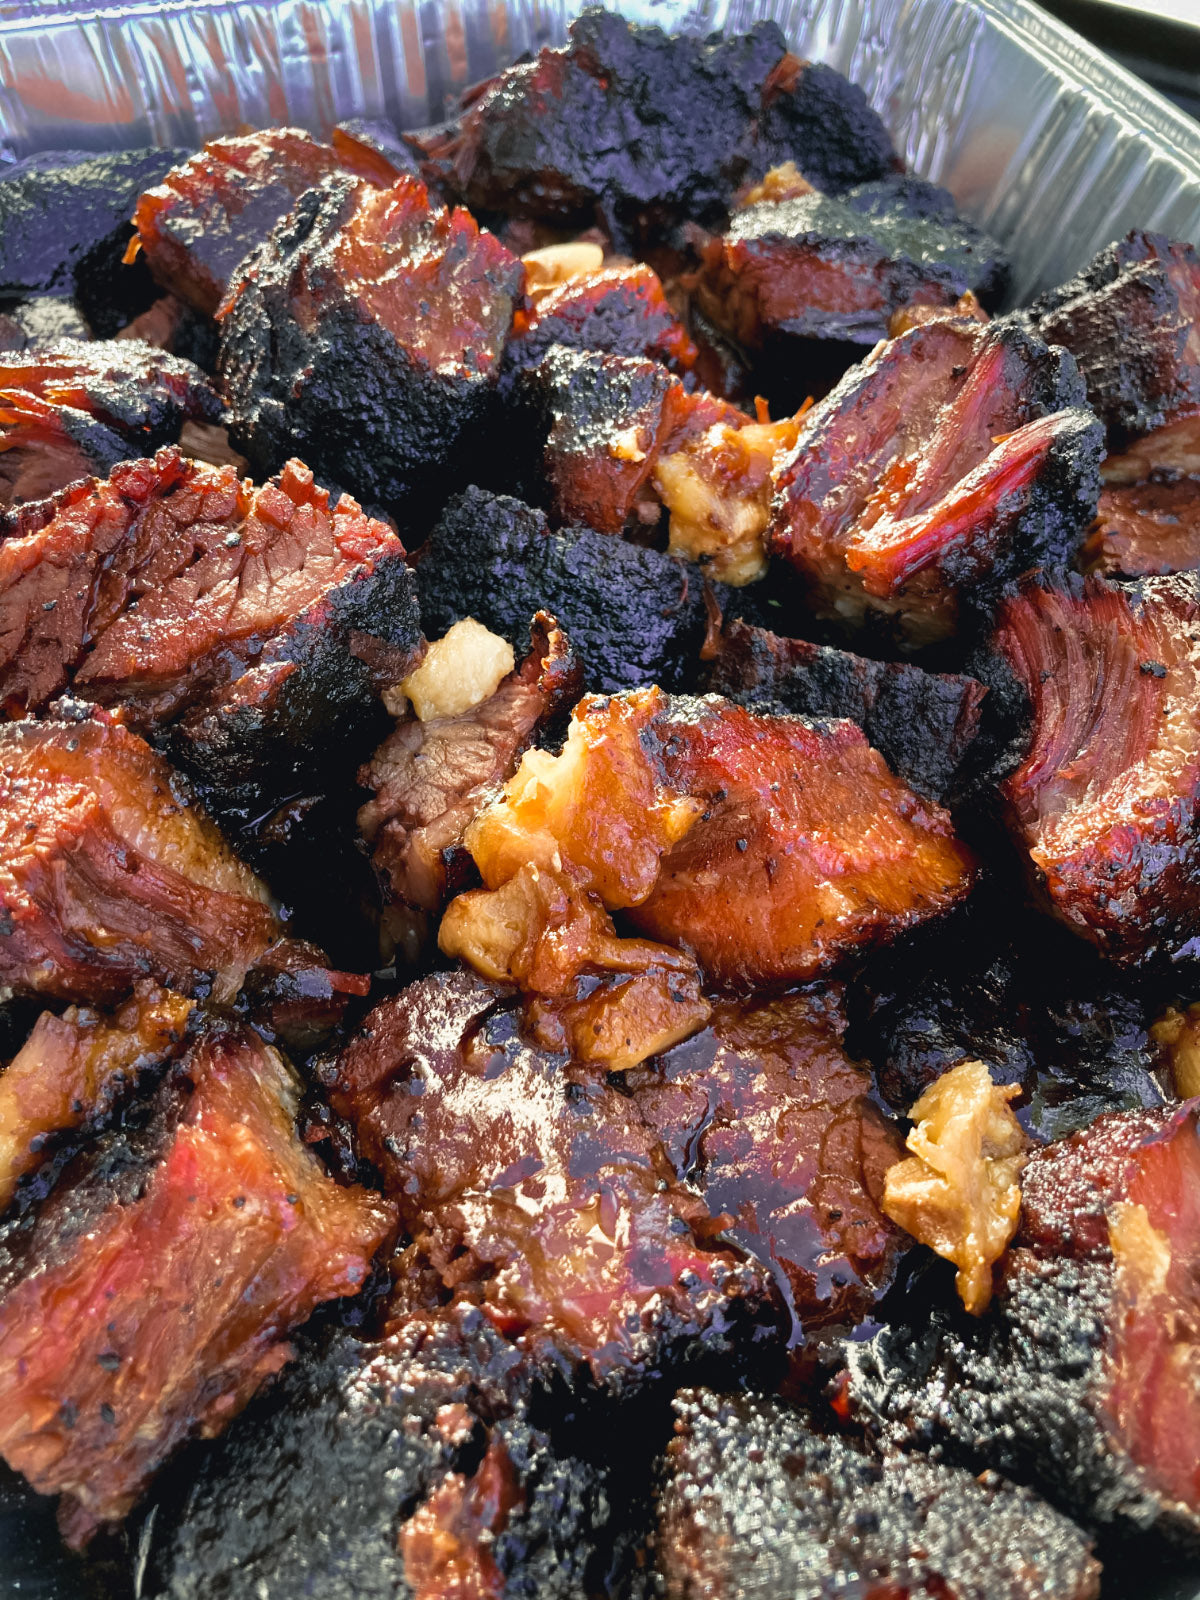 Photo of cooked brisket burnt ends